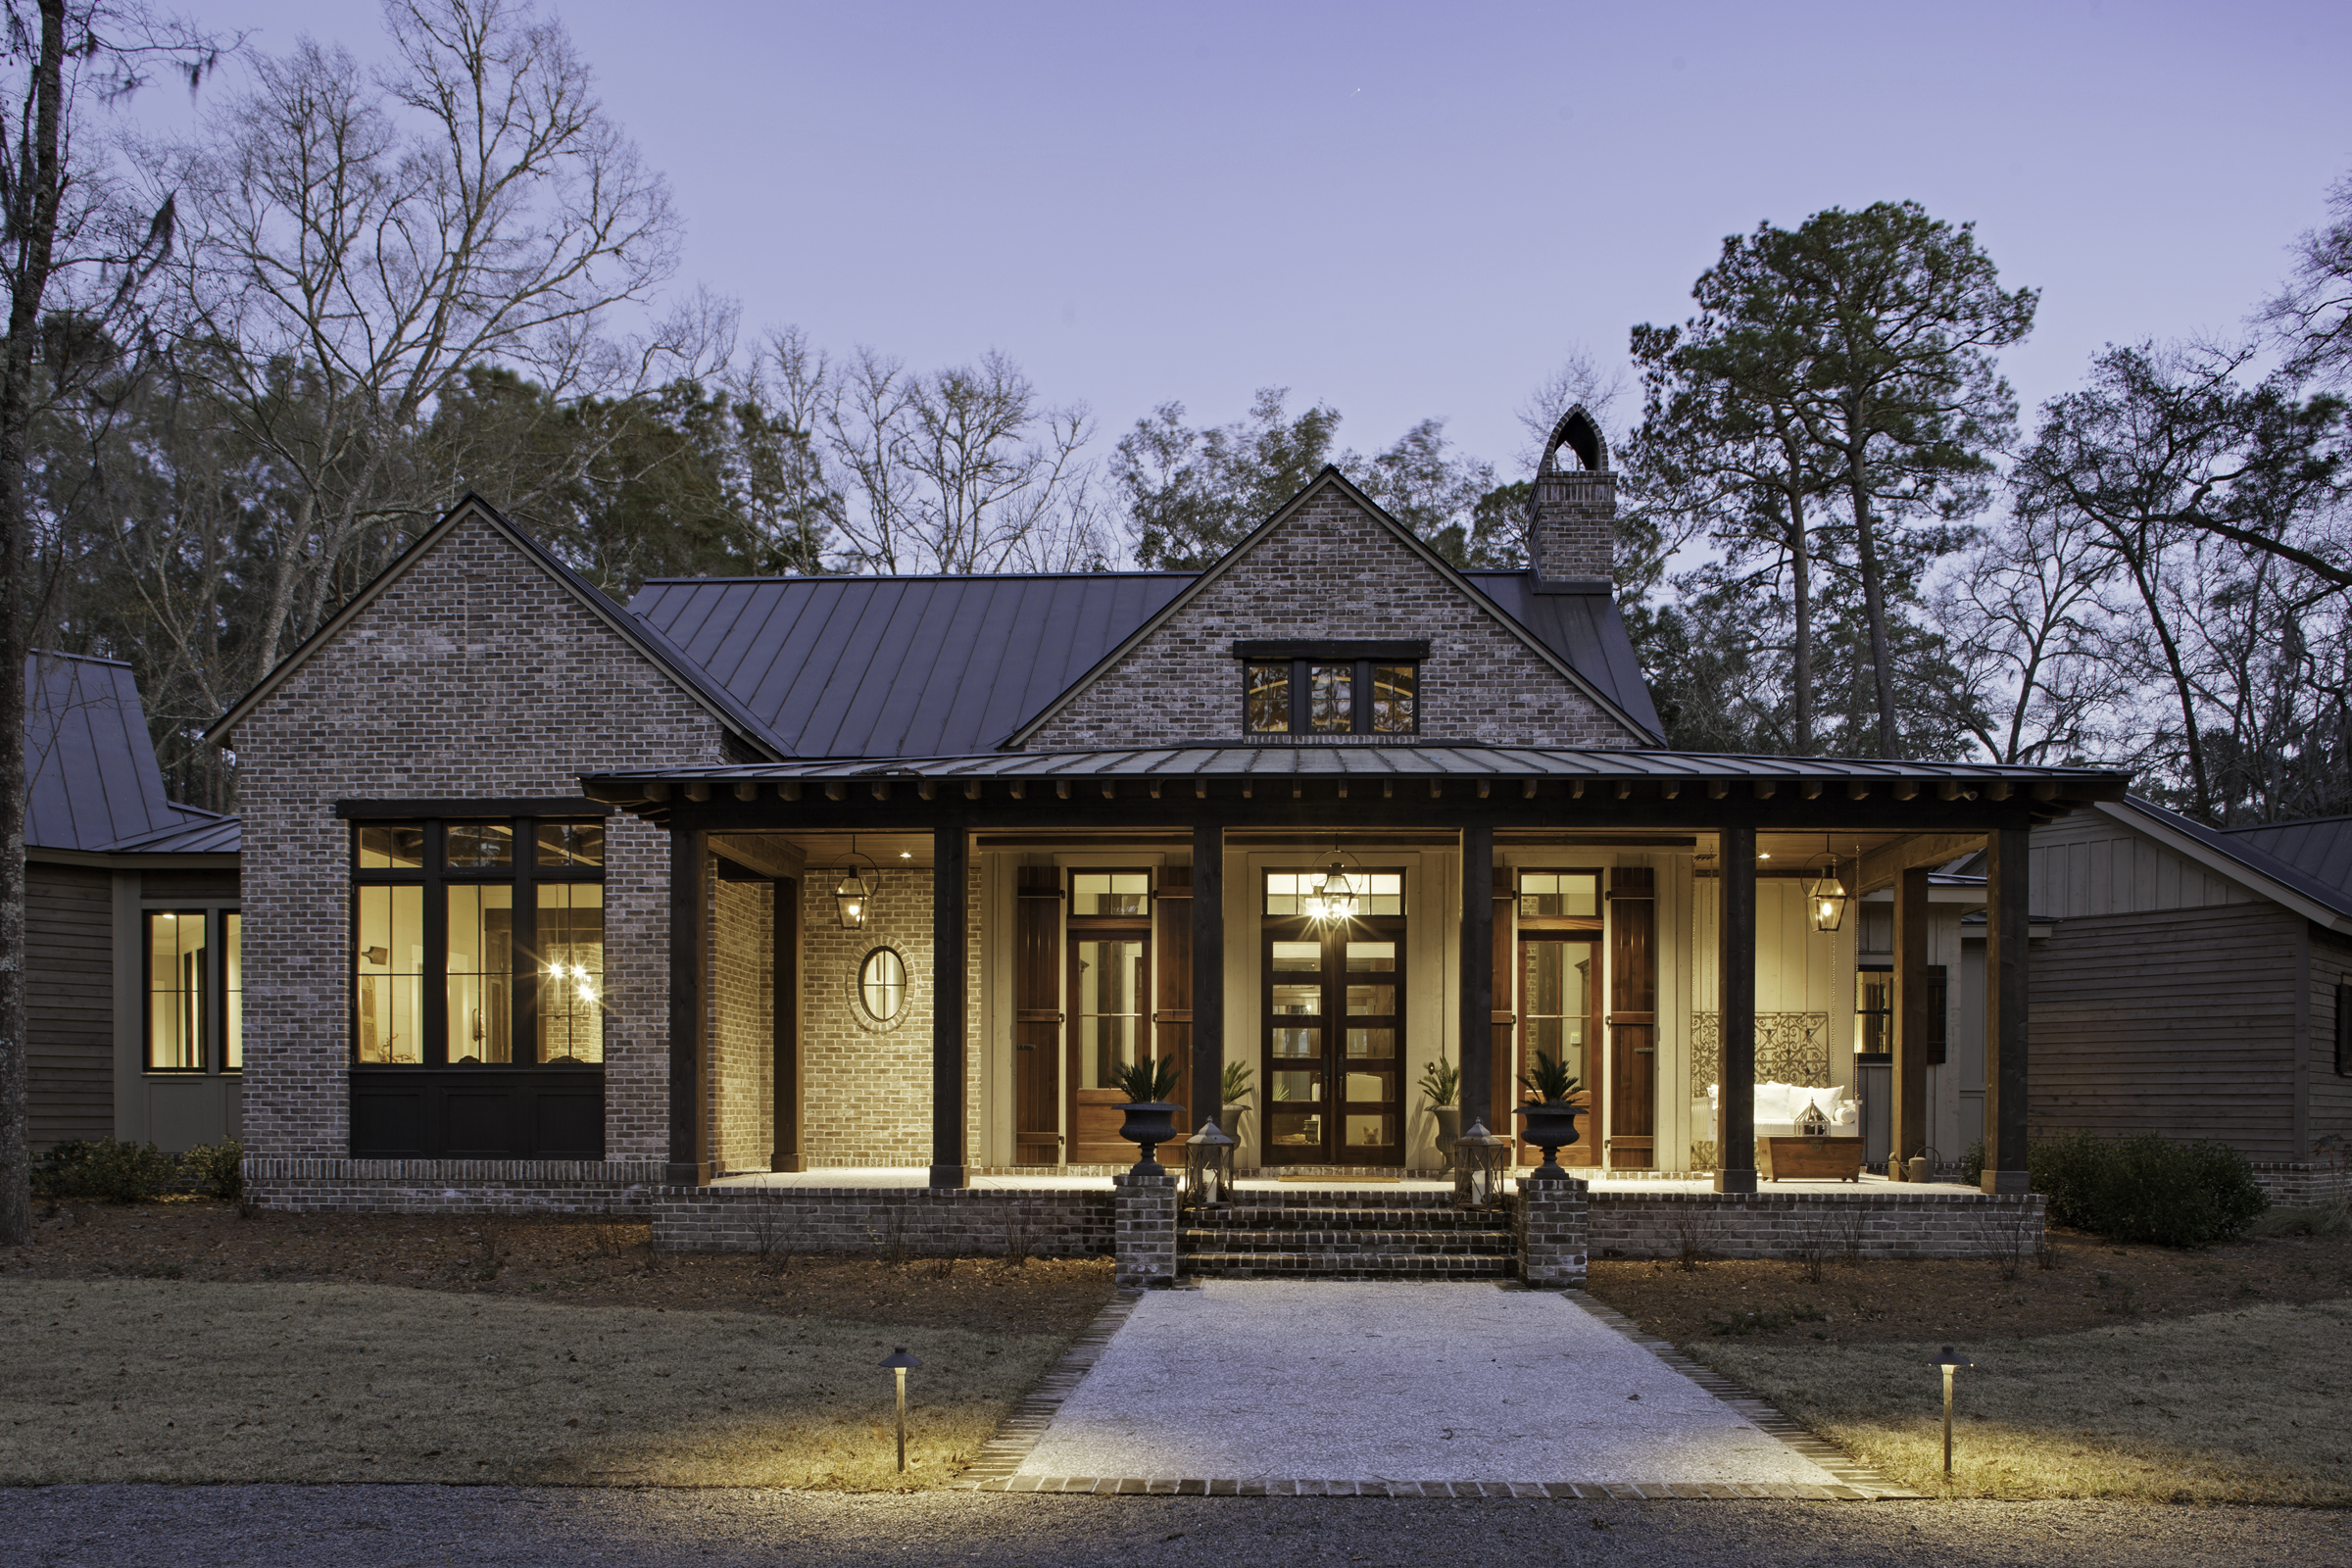 2018 Honor award winner:  CAMP EIGHT RESIDENCE  Pearce Scott / Pearce Scott Architects Category: Residential - Greater than 5,000 sq ft